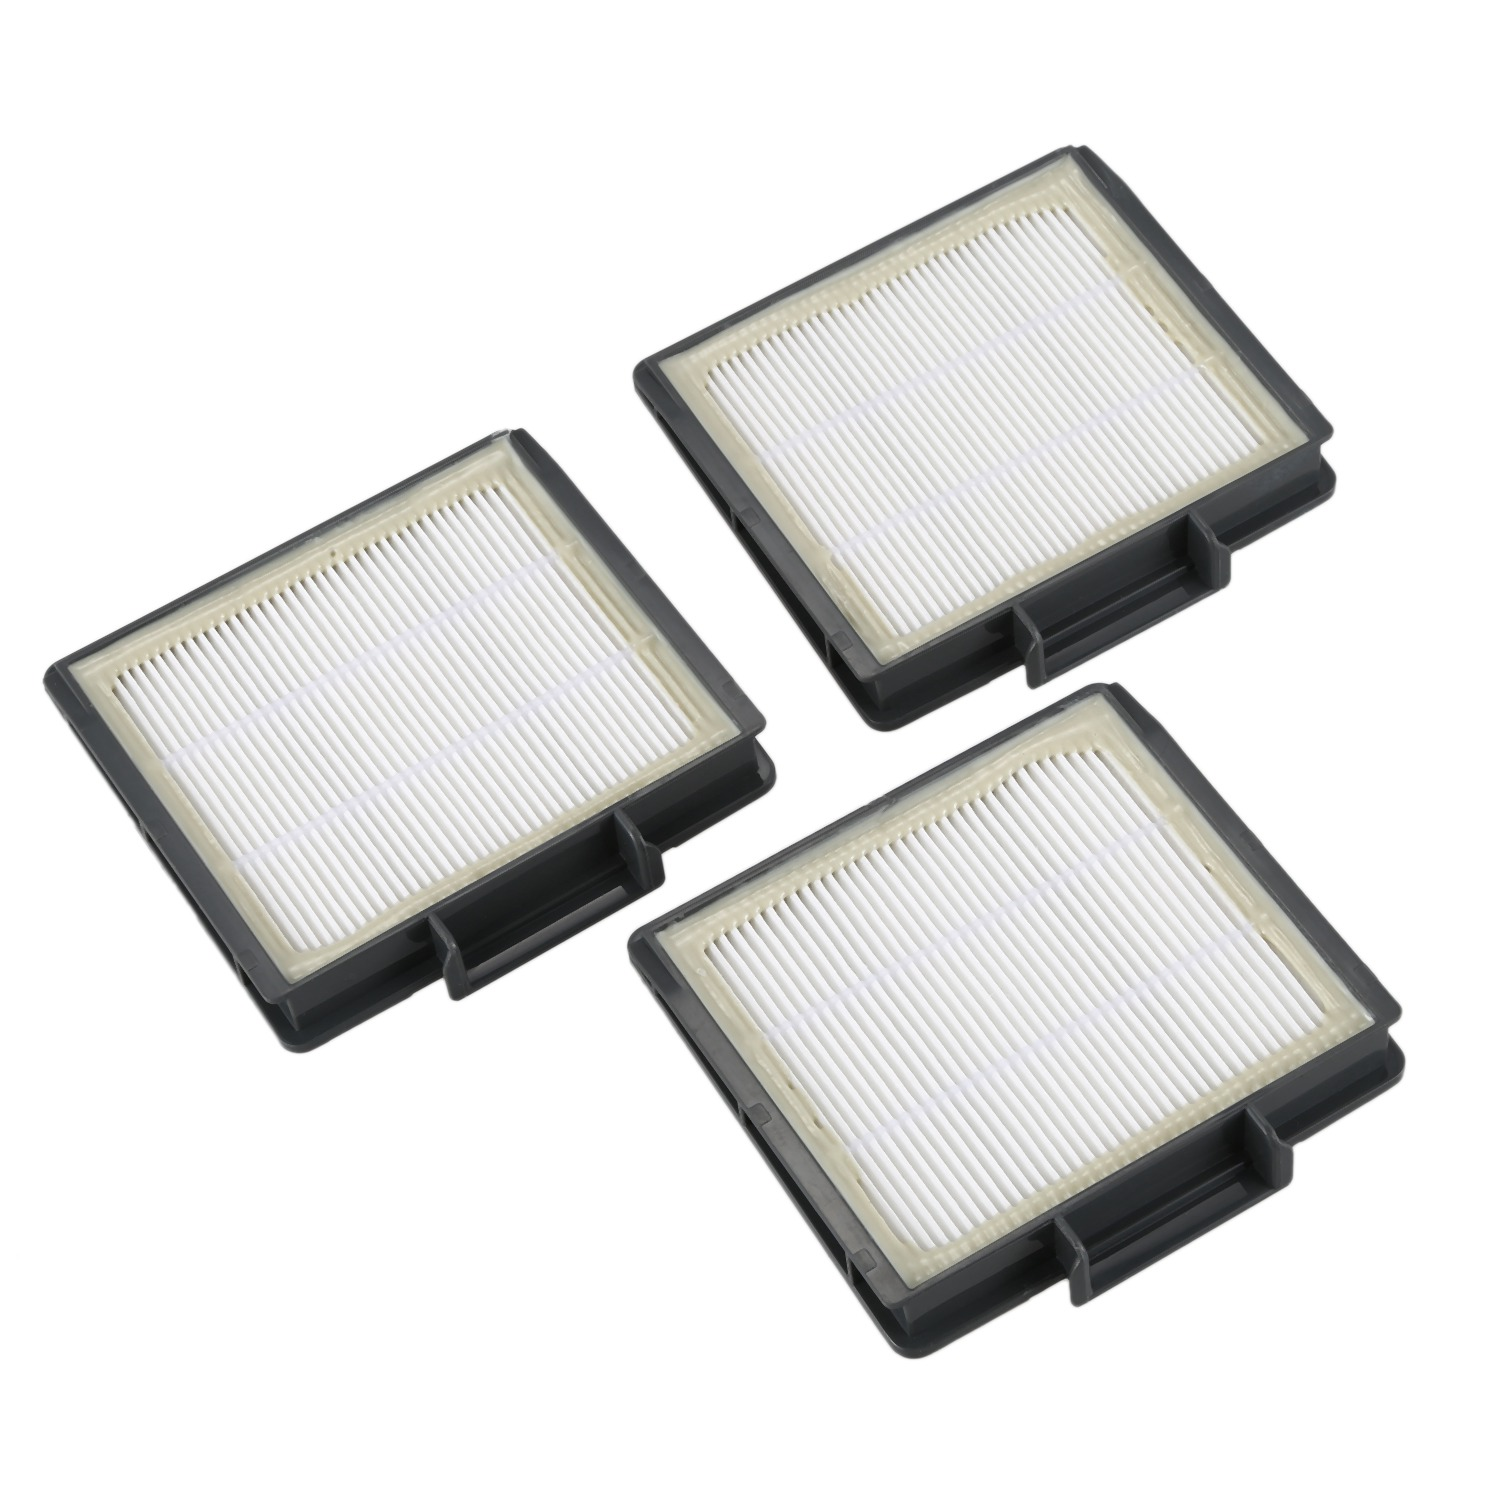 Hospitable 3pcs Pre-motor Hepa Filters For Shark Ion Robot Rv700_n Rv720_n Rv850 Rv851wv Rv850brn/wv Vacuum Cleaner Part Fit # Rvffk950 Sturdy Construction Vacuum Cleaner Parts Cleaning Appliance Parts